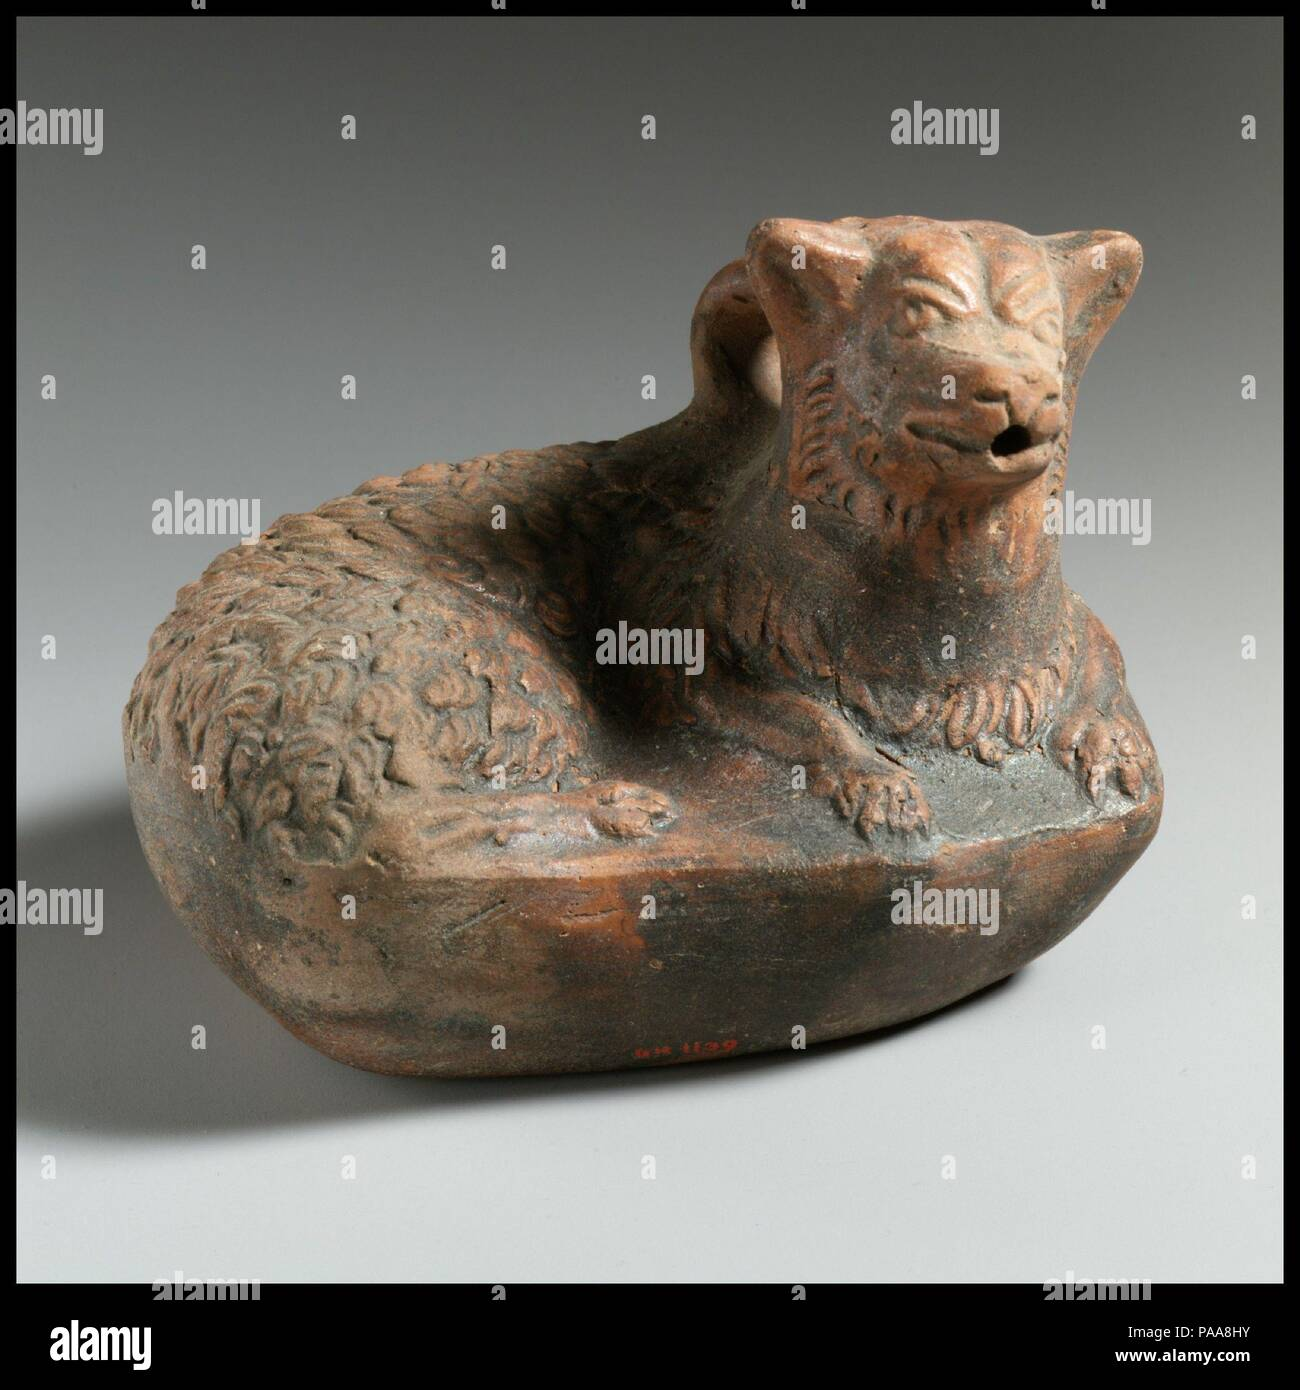 Terracotta askos in the form of a dog  Culture: Greek